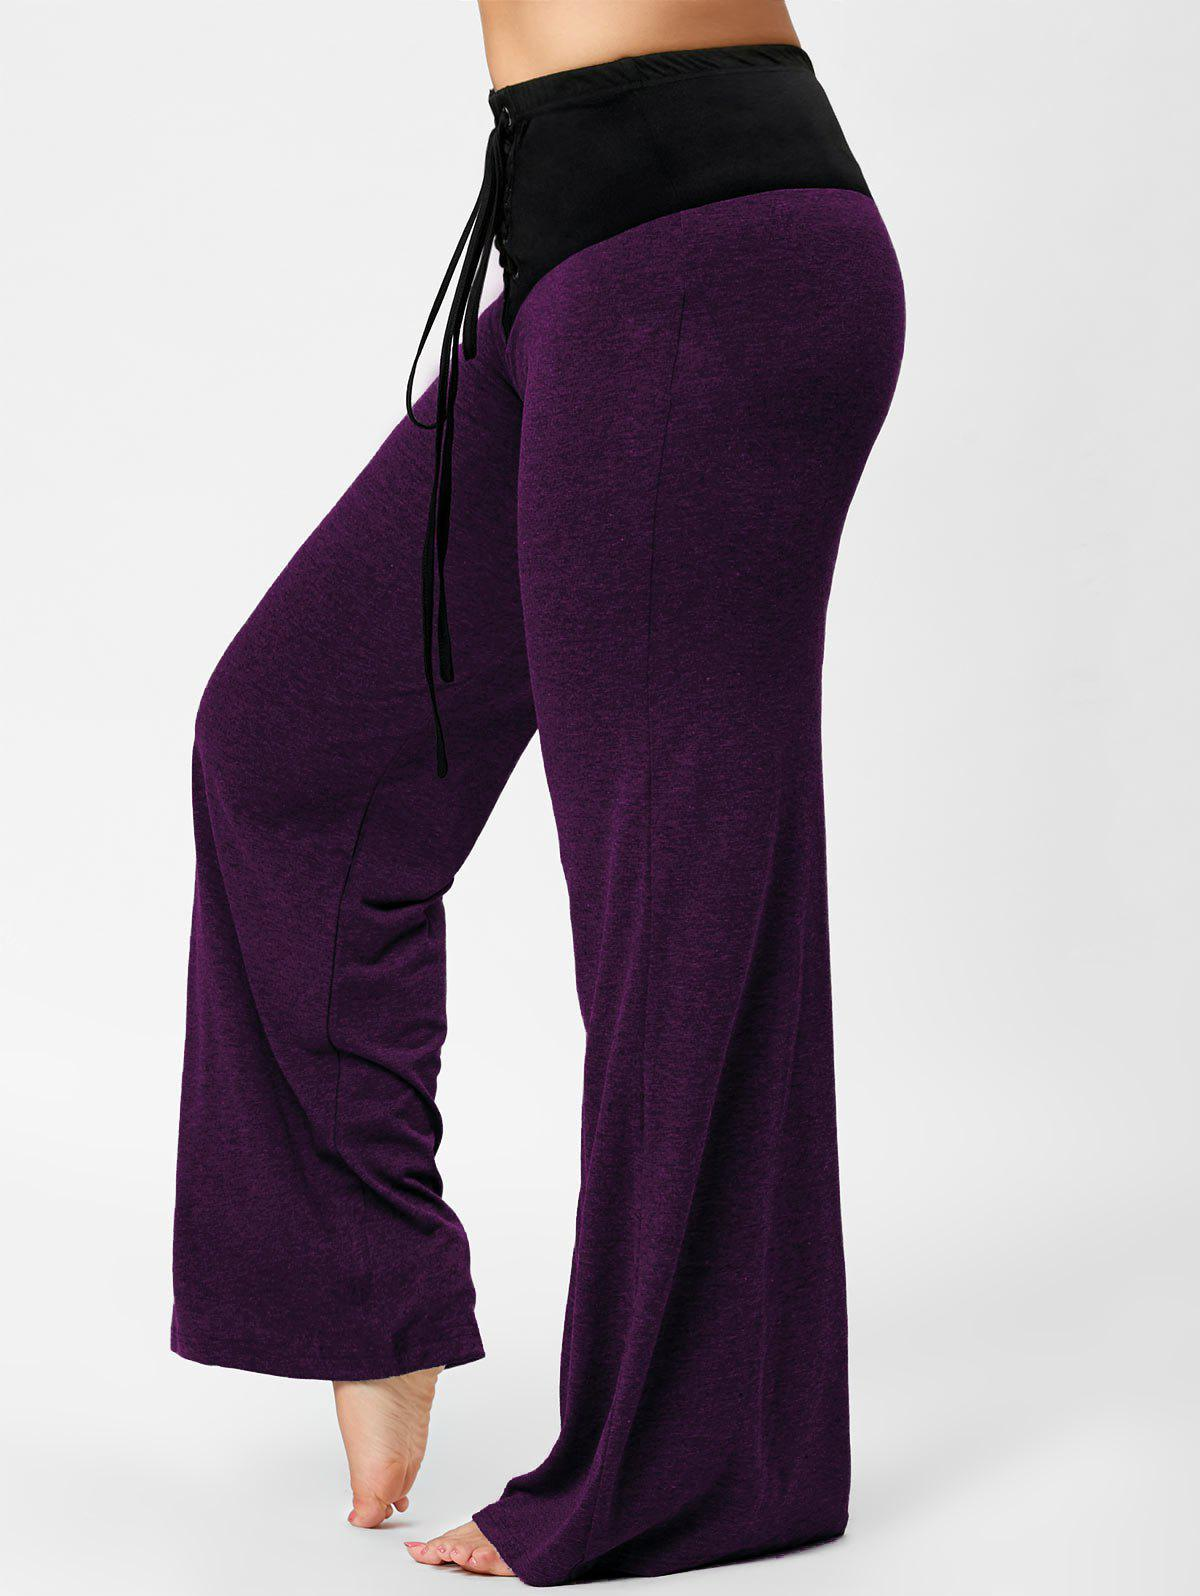 Lace-up Plus Size Two Tone Flare PantsWOMEN<br><br>Size: 4XL; Color: PURPLE; Style: Casual; Length: Overlength; Material: Polyester,Spandex; Fit Type: Regular; Waist Type: High; Closure Type: Elastic Waist; Pattern Type: Others; Pant Style: Flare Pants; Weight: 0.3830kg; Package Contents: 1 x Pants;